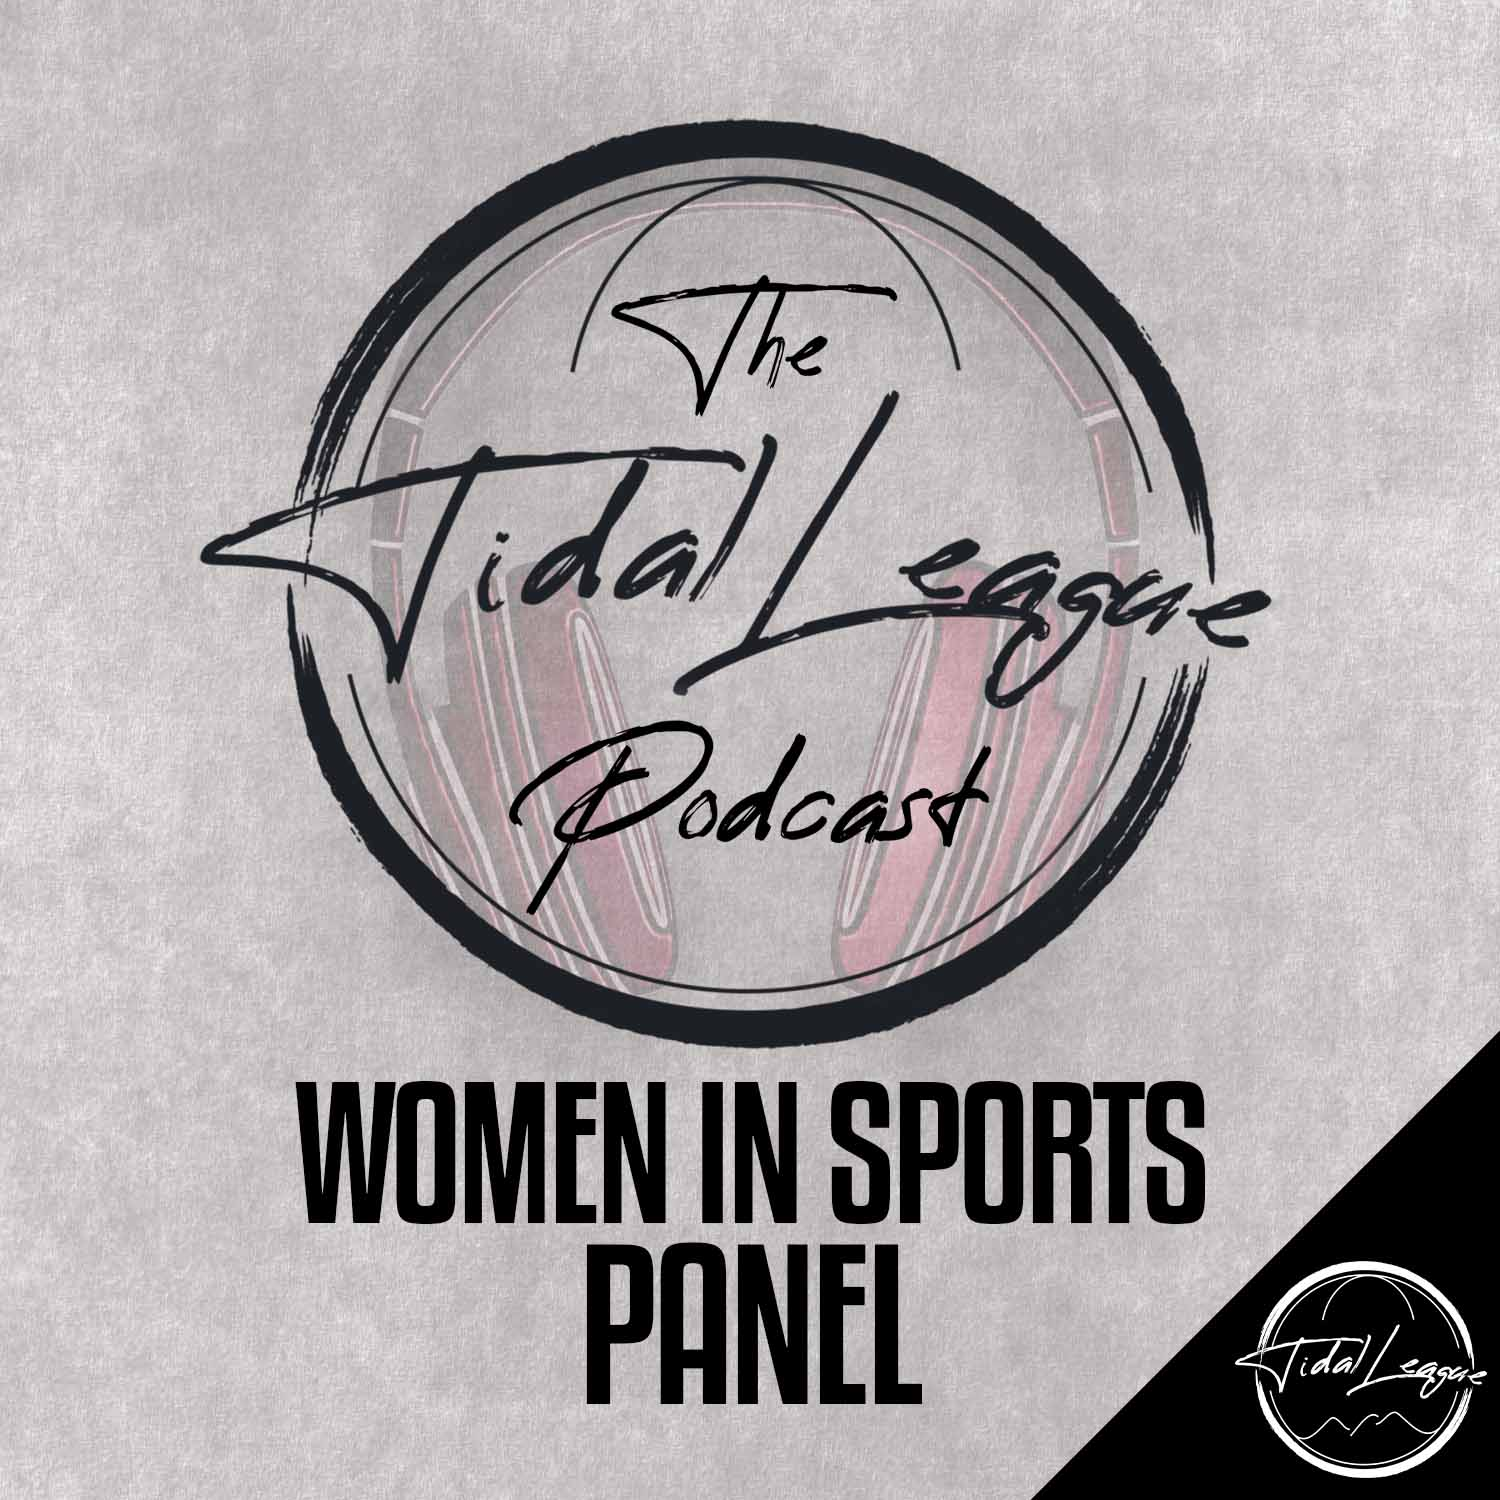 Women in Sports Panel Discussion